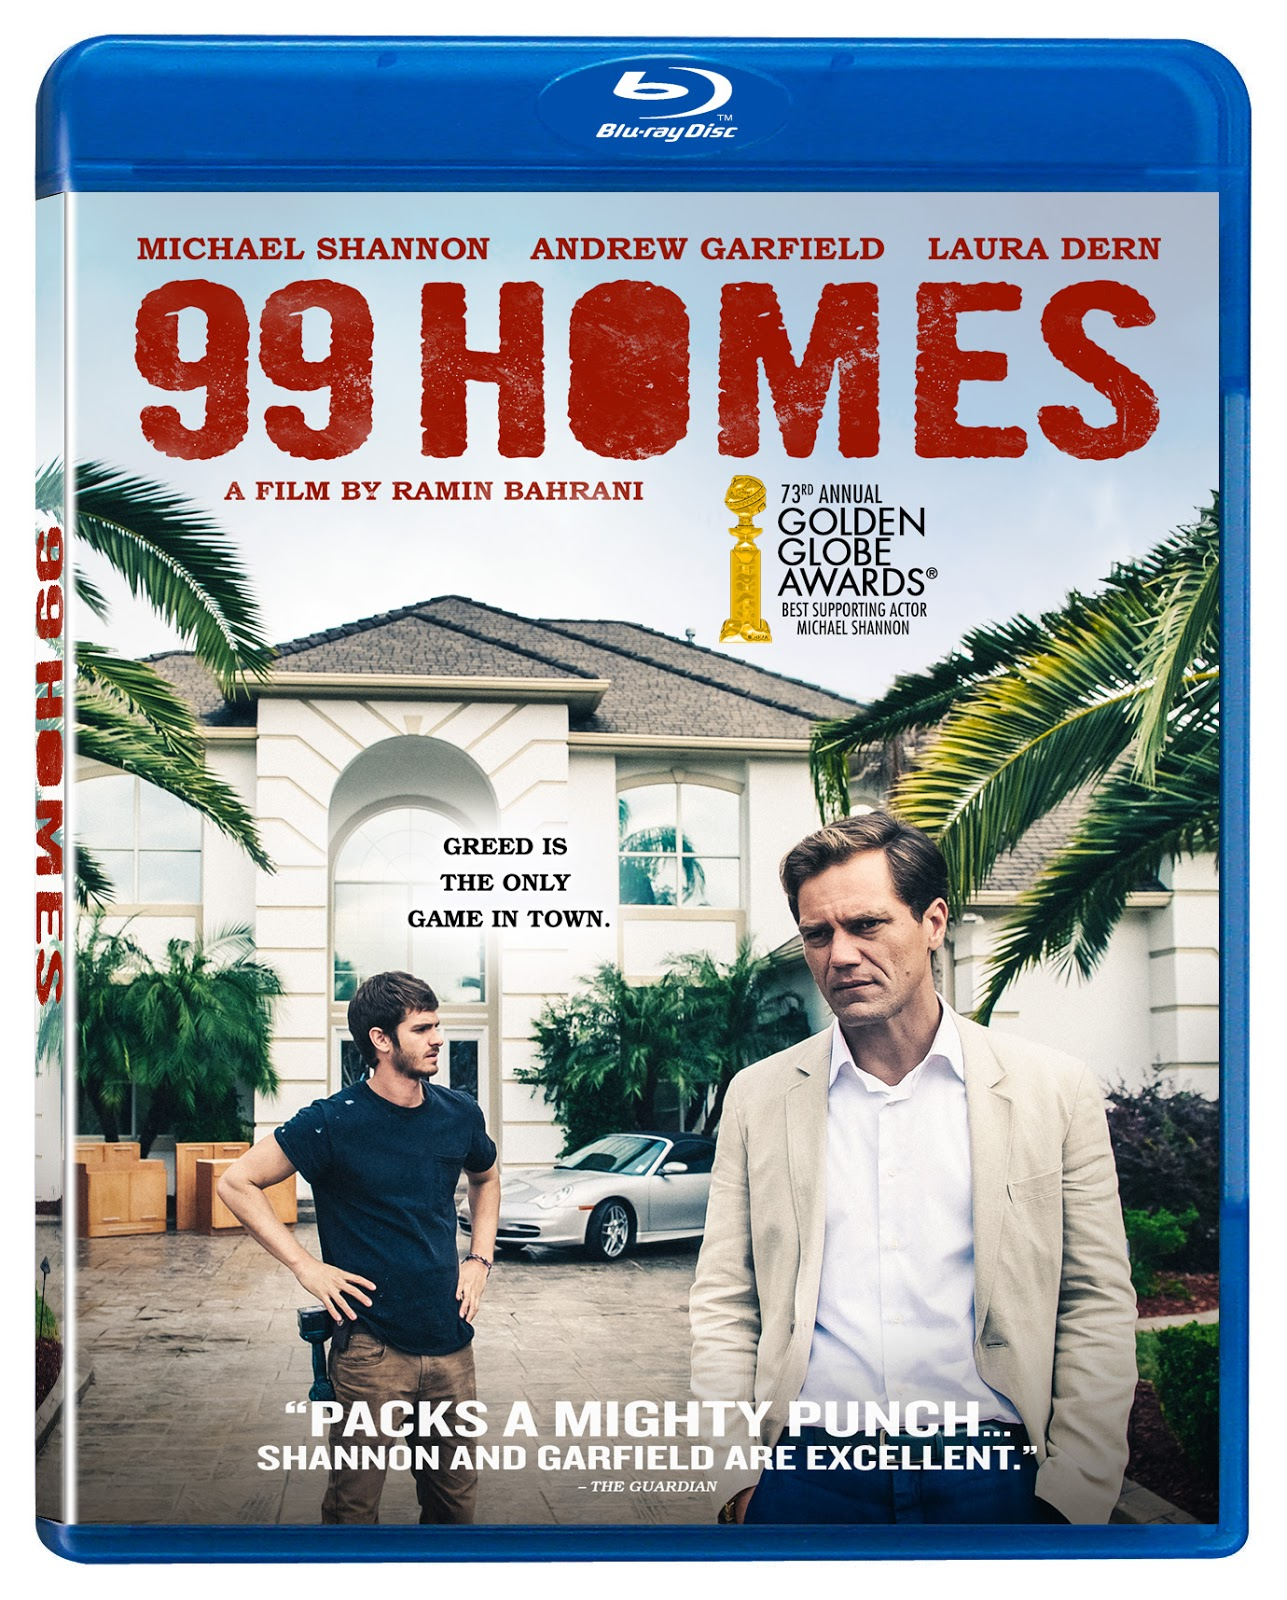 Cinemablographer: Contest! Win '99 Homes' on Blu-ray